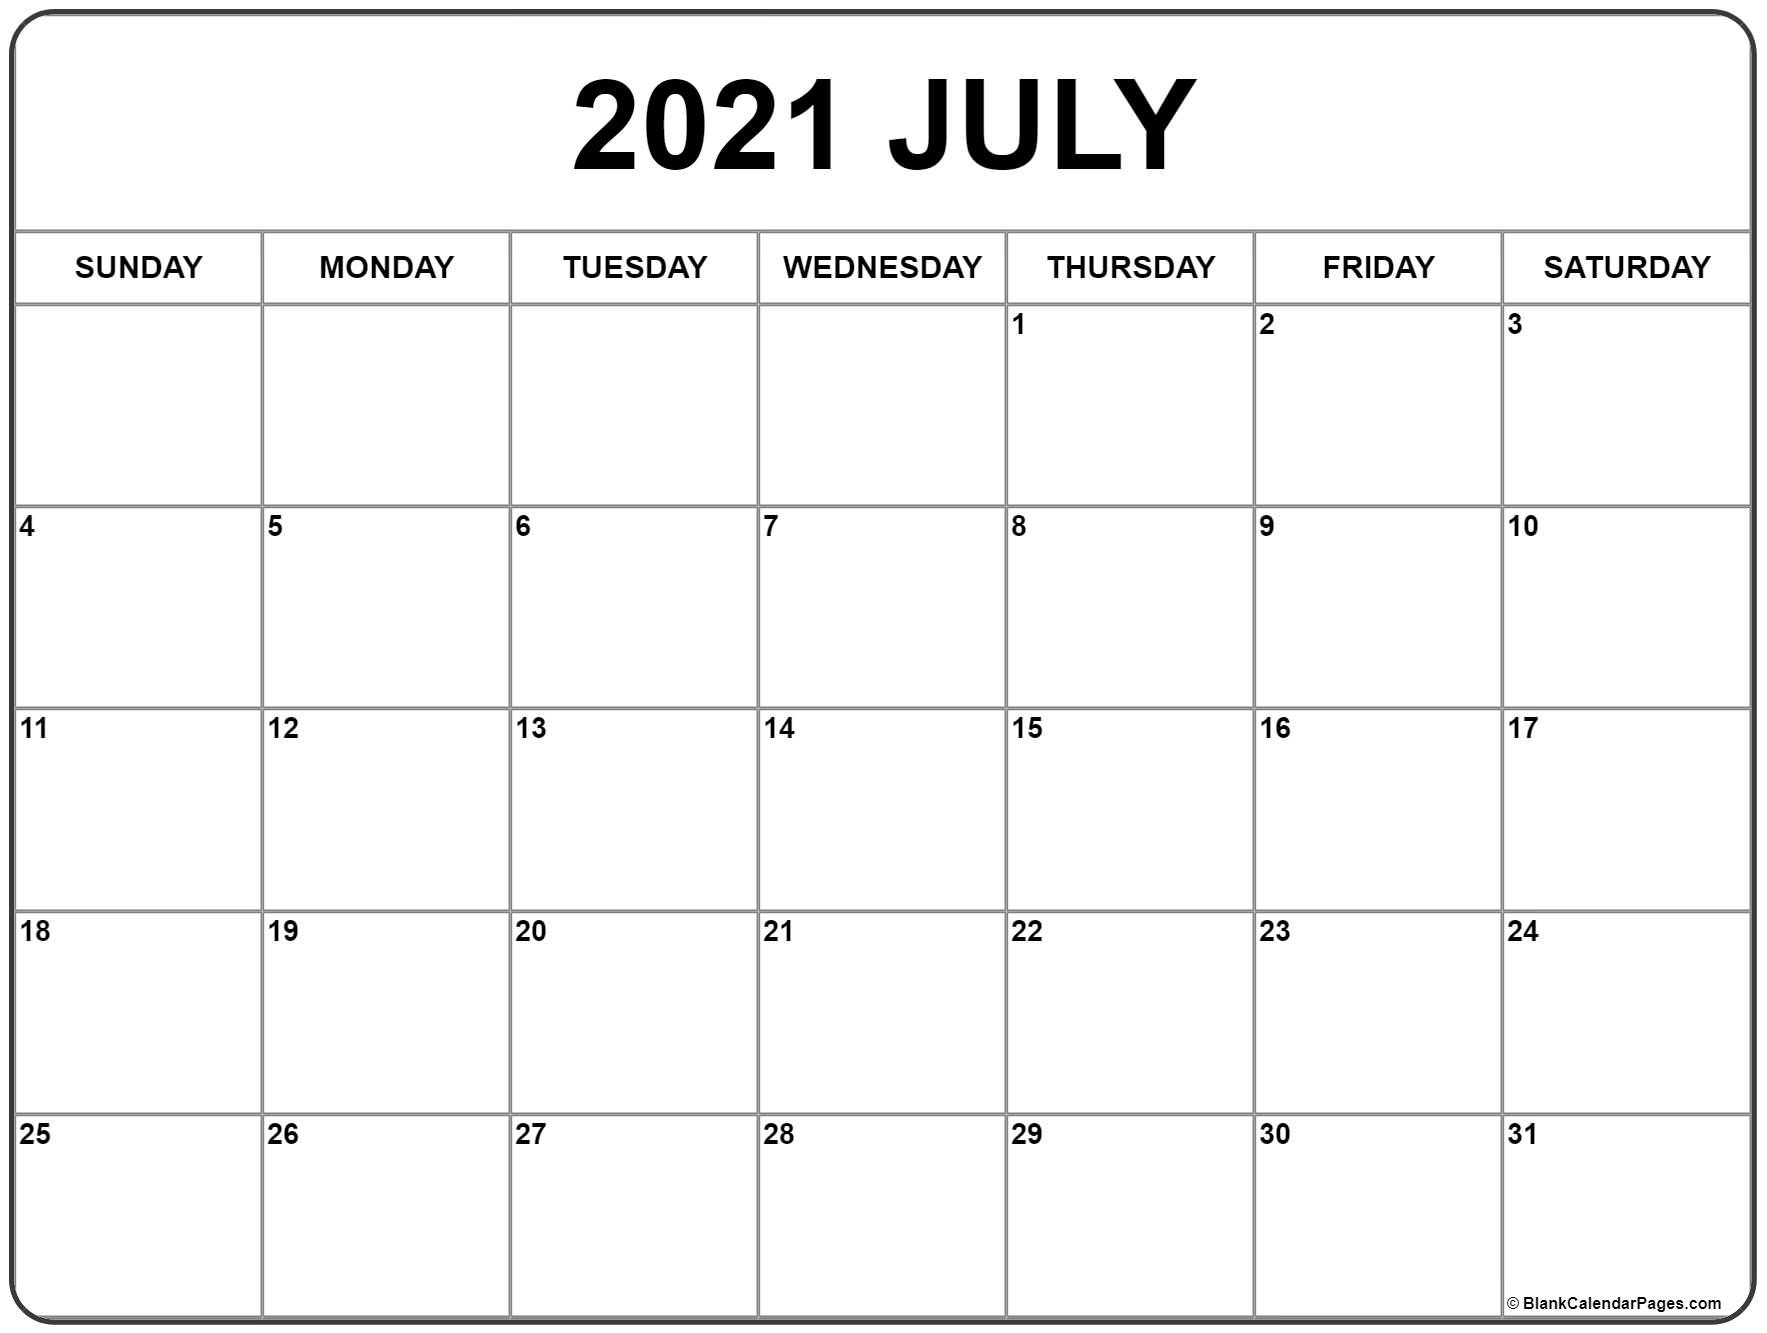 July 2021 Calendar | Free Printable Monthly Calendars  Fill In The Blank Calendar 2021